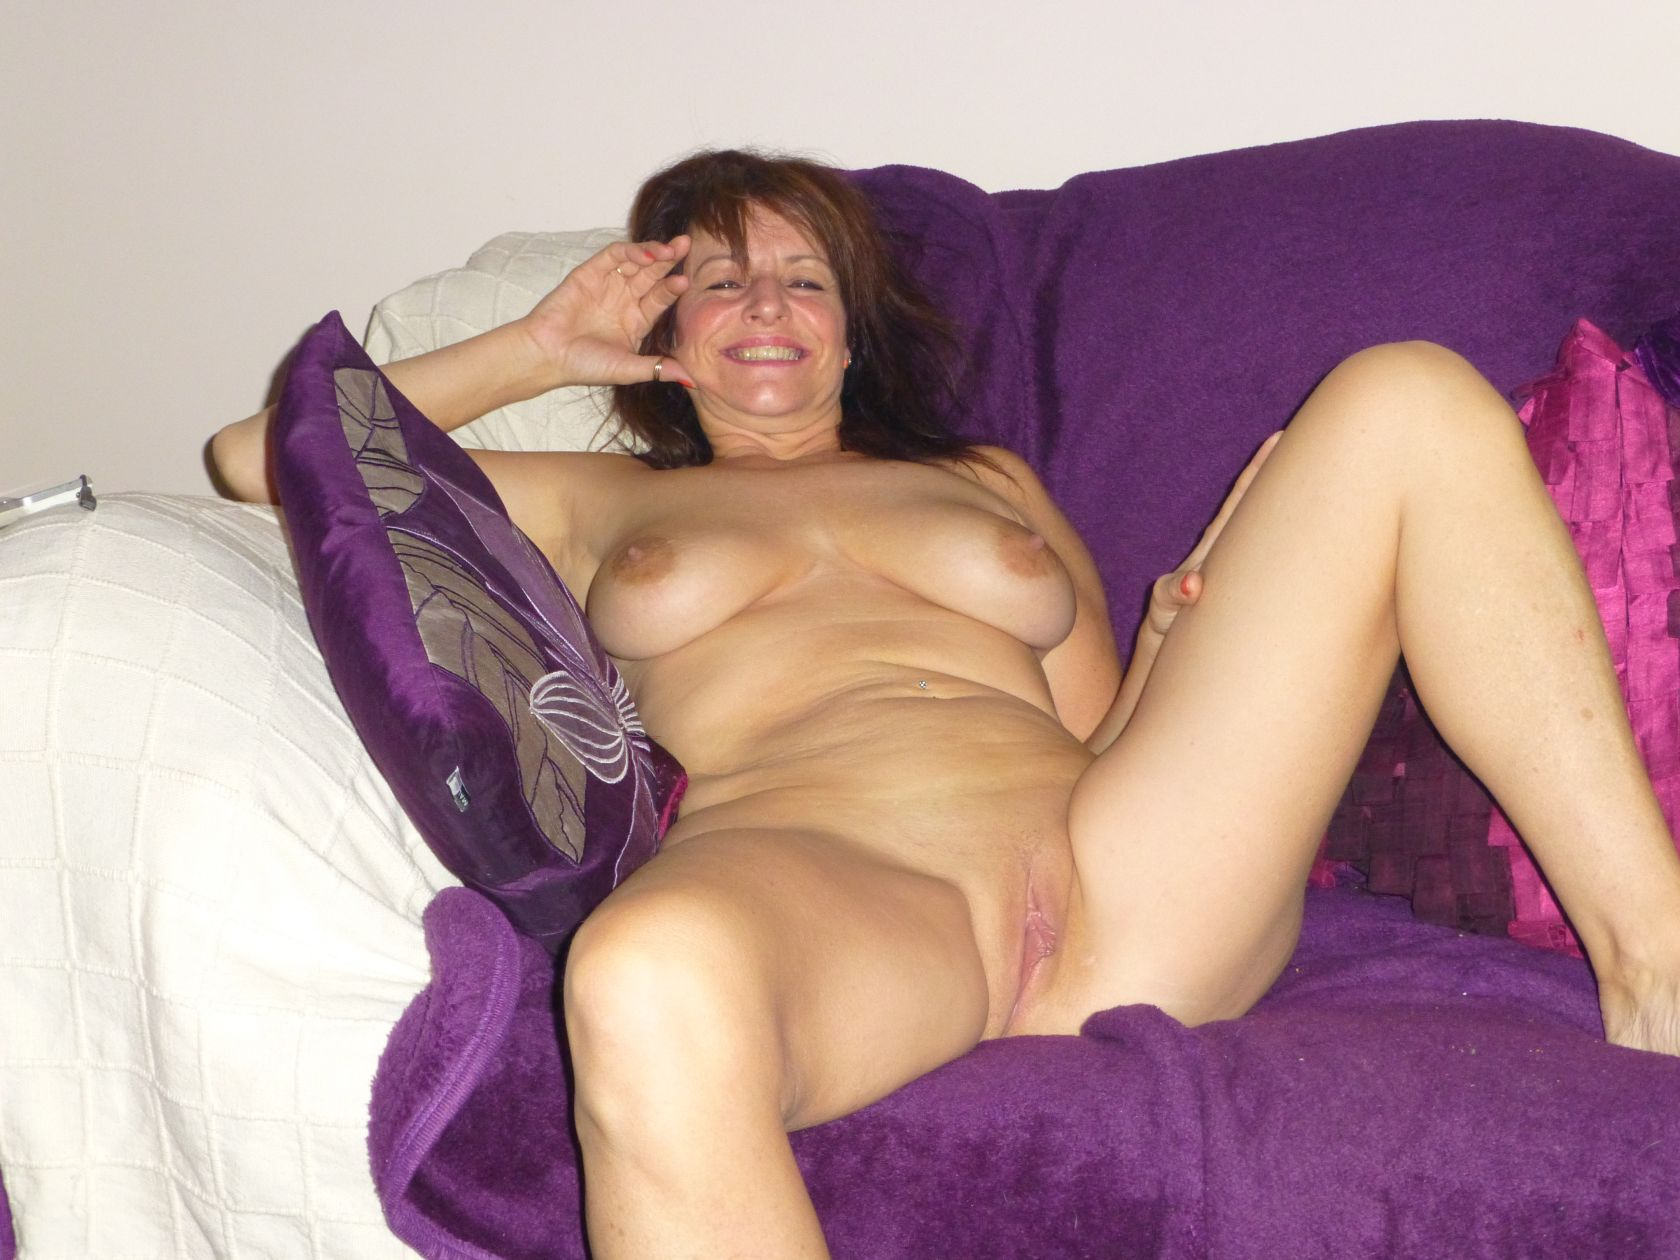 Ready for another cock. real nudity mature